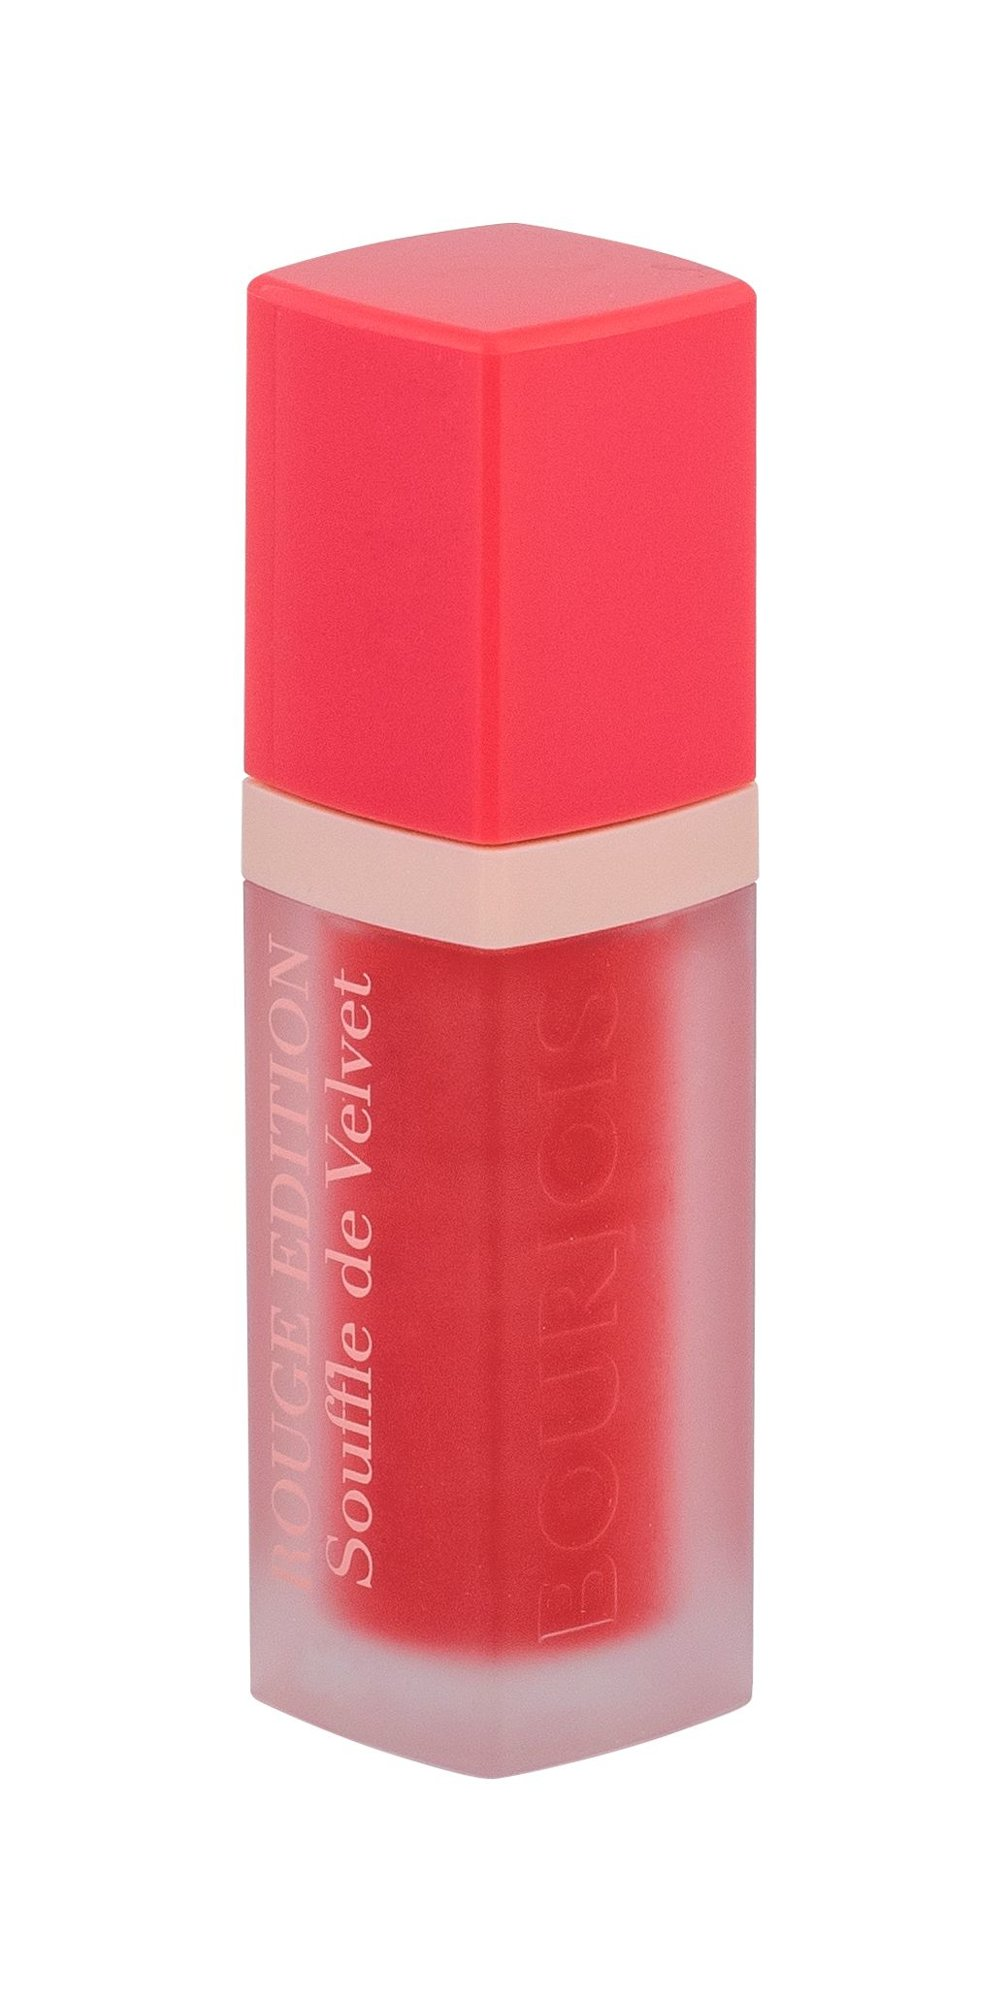 BOURJOIS Paris Rouge Edition Cosmetic 7,7ml 03 VIPech